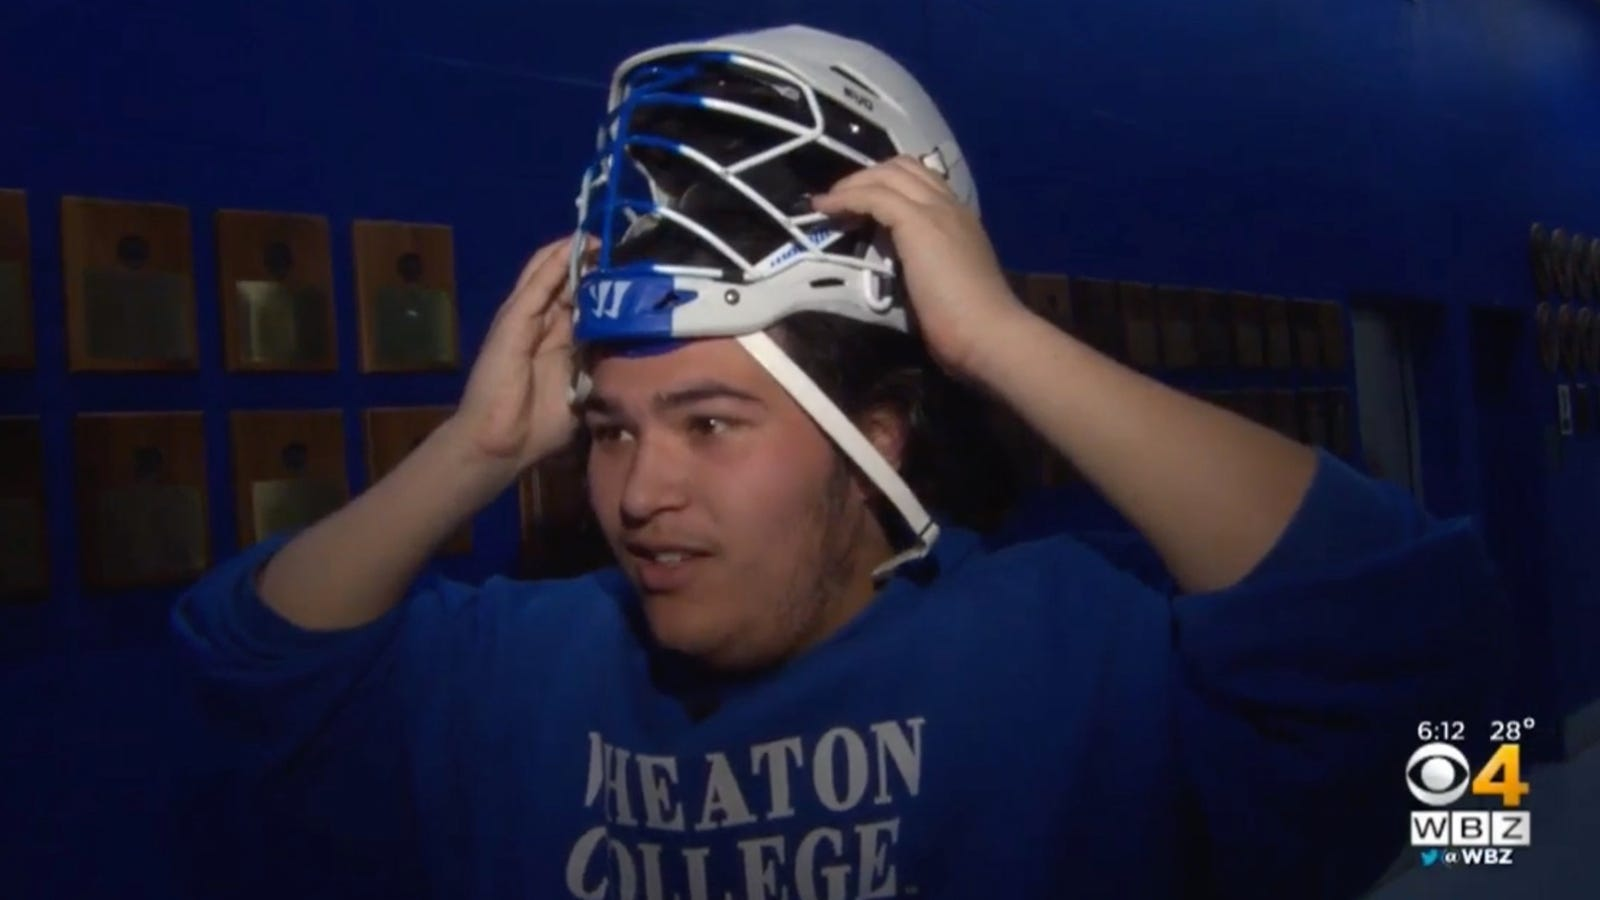 College Lacrosse Player Forced To Sit Out Because His Head Is Too Big